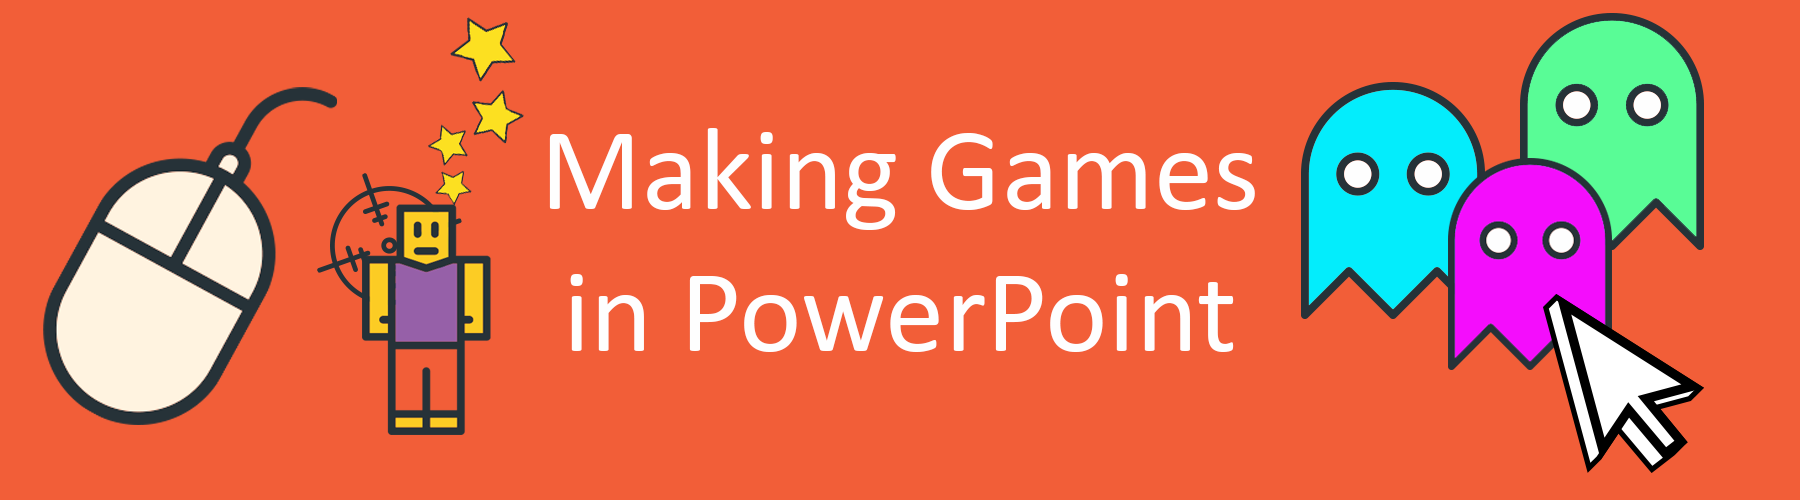 Making Games In PowerPoint